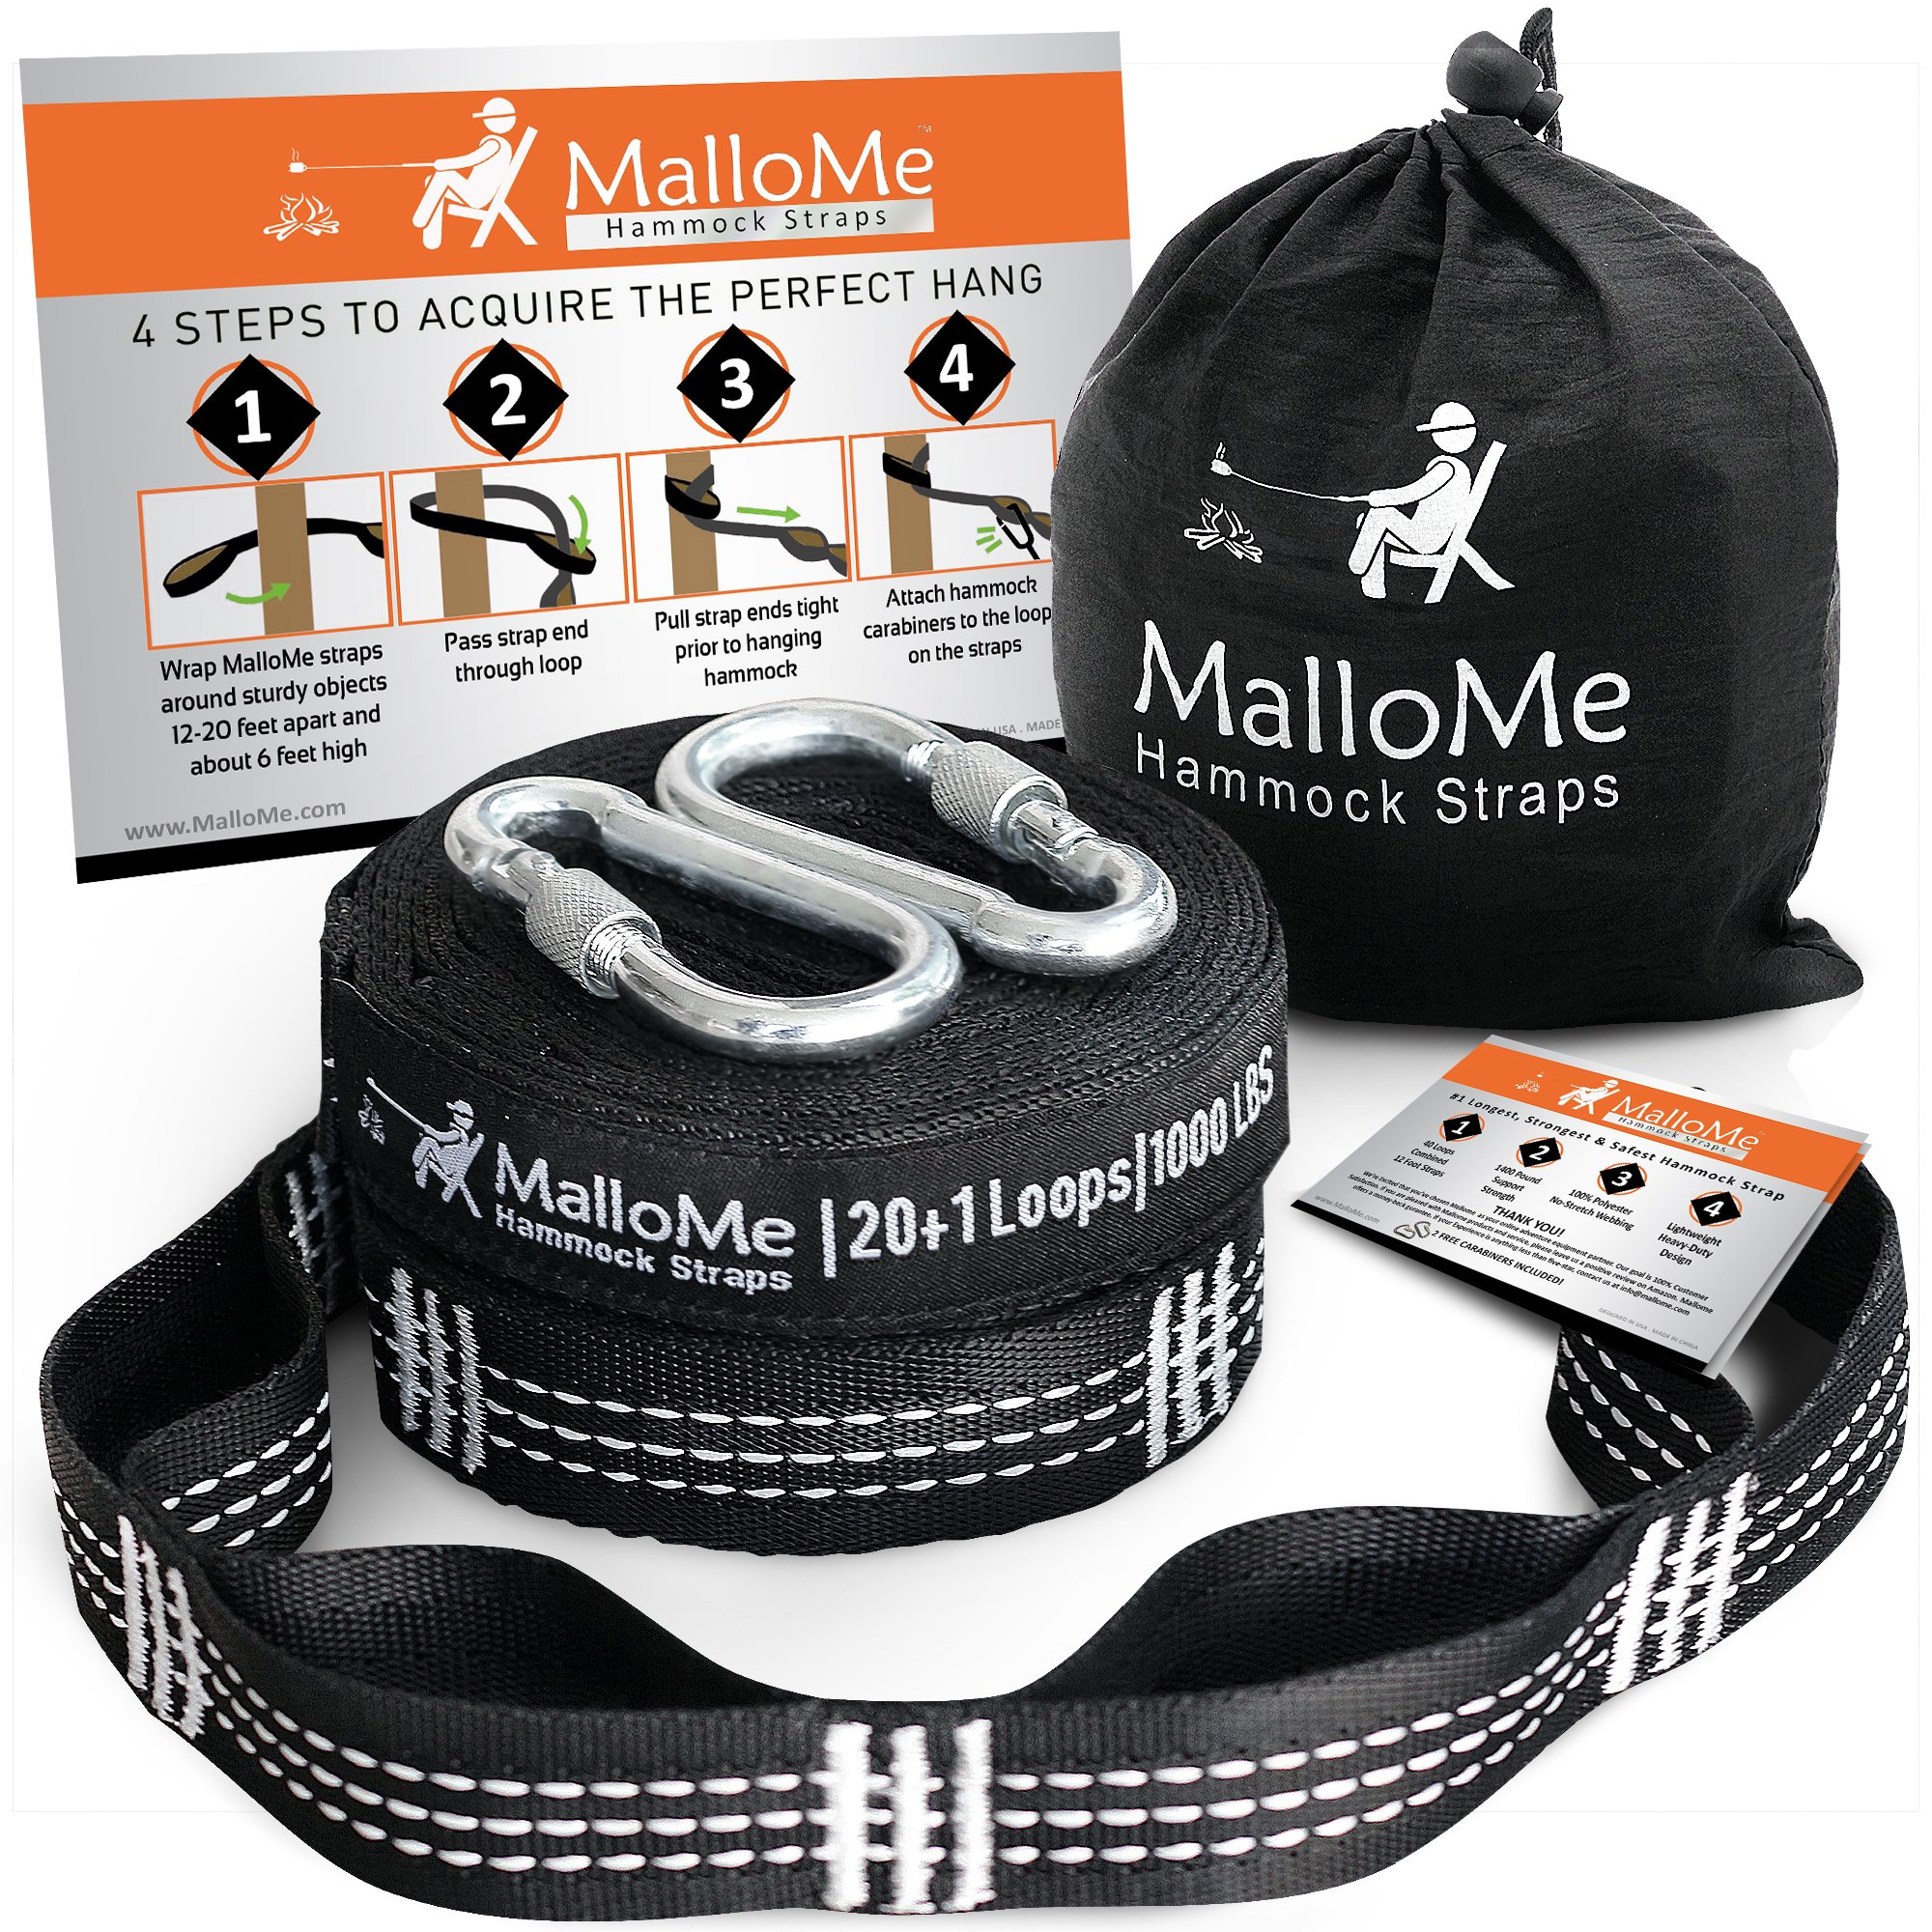 XL Hammock Straps - Hammock Tree Straps Set Versatile 2000+ LBS Heavy Duty 40 Loops & 100% No Stretch Suspension System Kit - Camping Hammock Accessories | 2 Carabiners by MalloMe